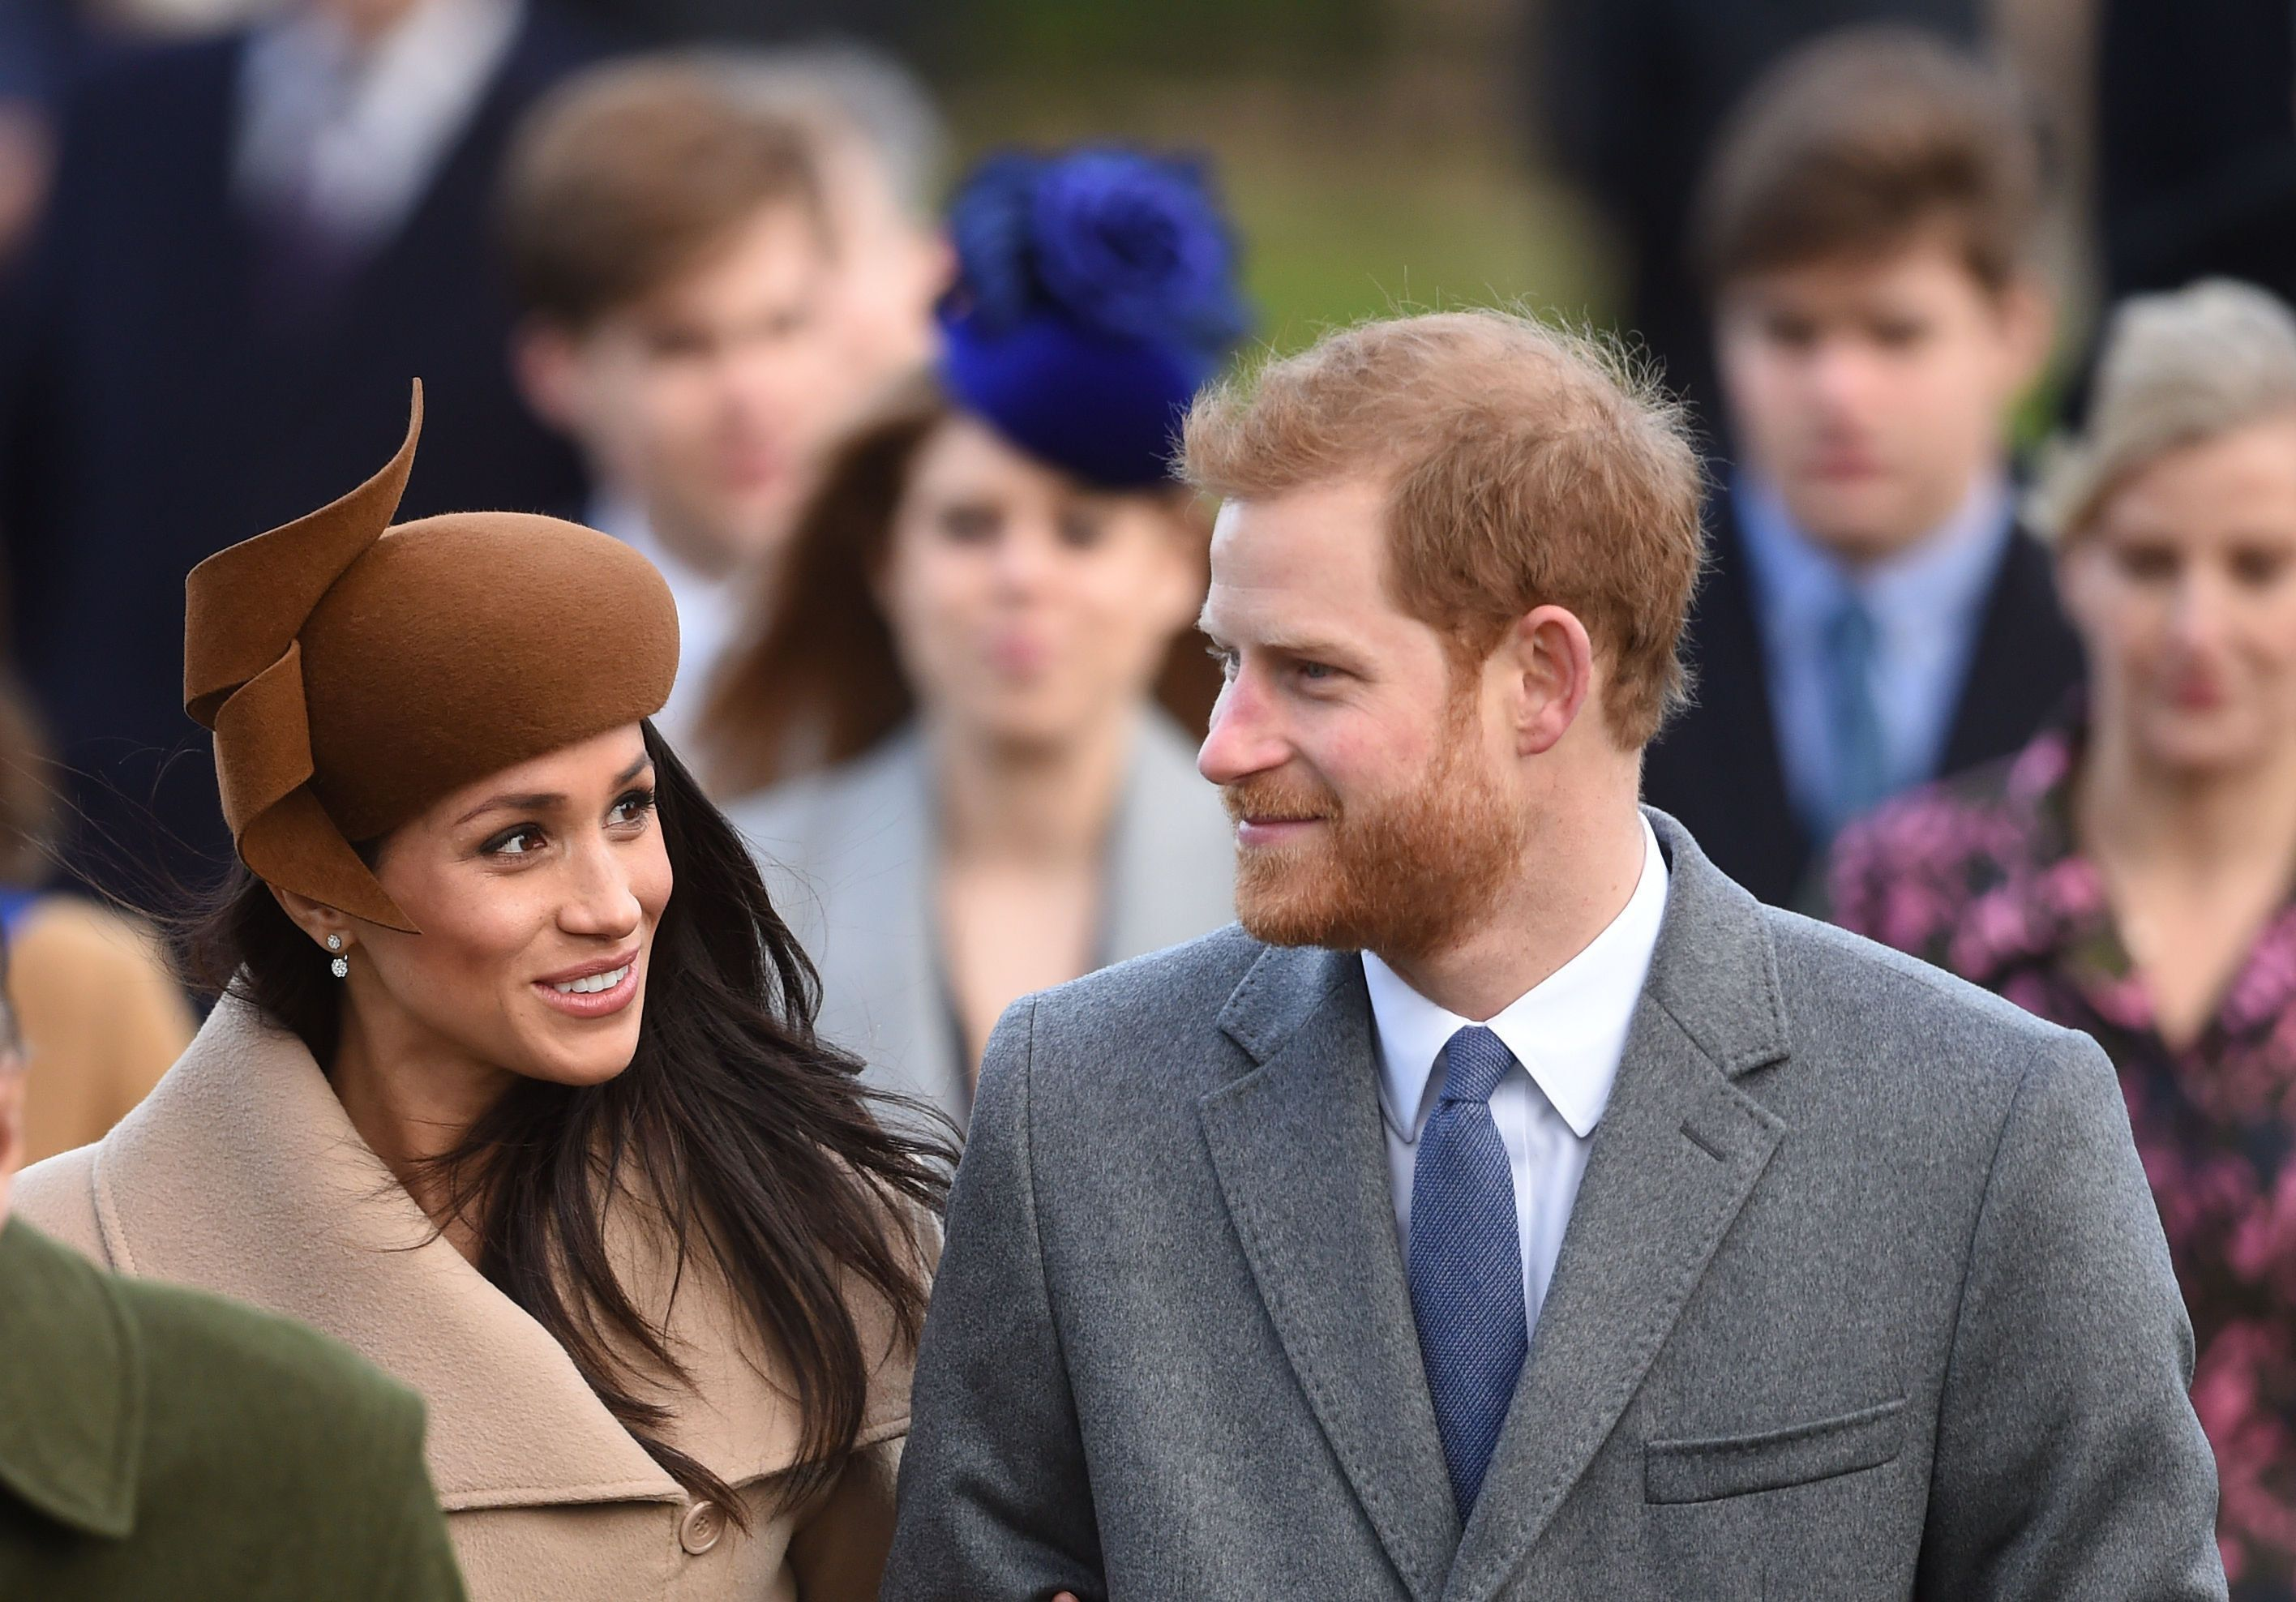 Prince Harry and Meghan Markle arrive to attend Christmas morning church service at St Mary Magdalene Church in Sandringham, Norfolk, England.